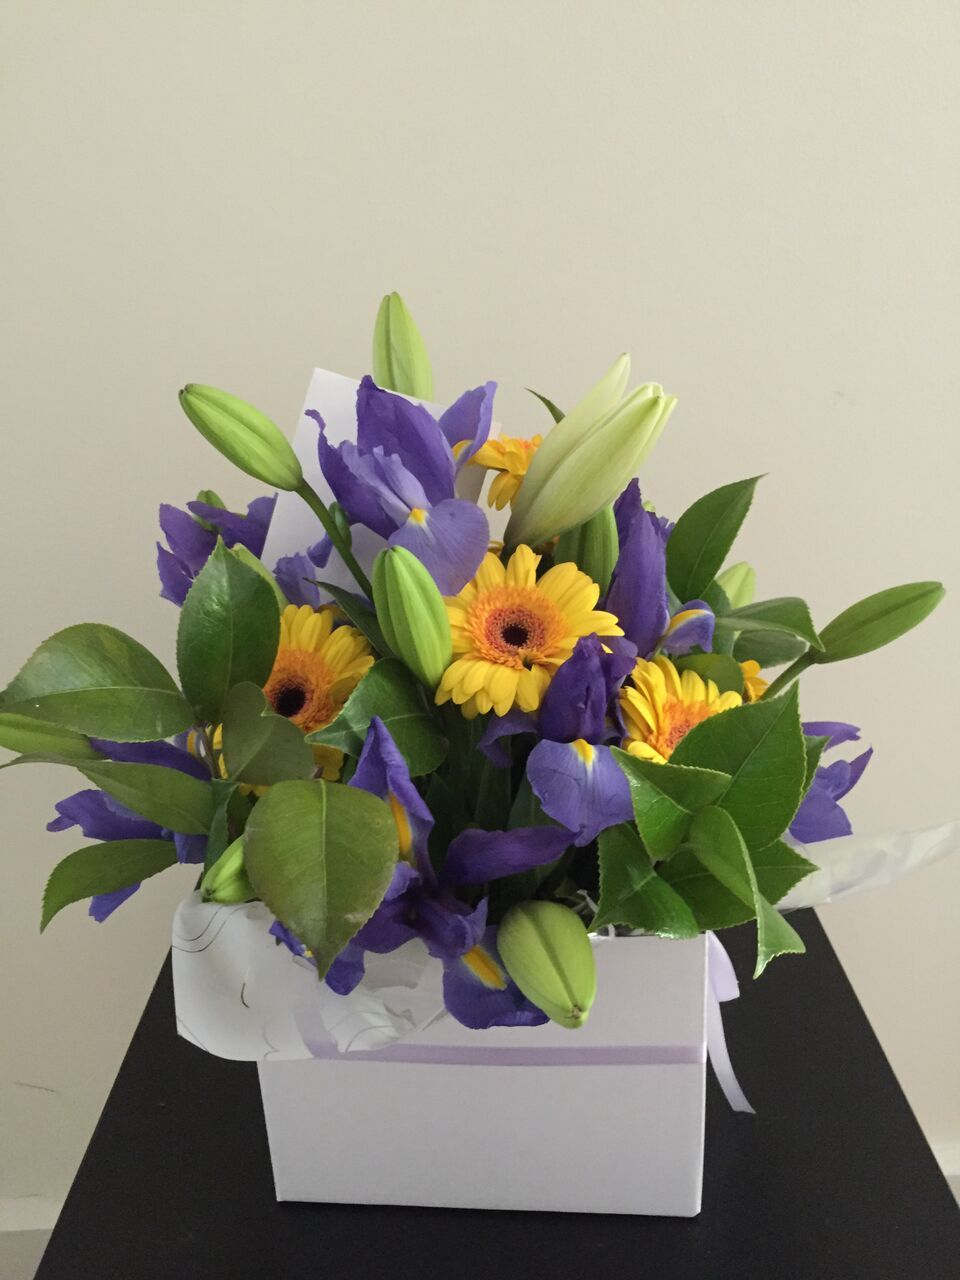 International womens day thursday march 8 2017 celebrate flowers delivery in melbourne send flowers to melbourne cheap flowers delivery melbourne izmirmasajfo